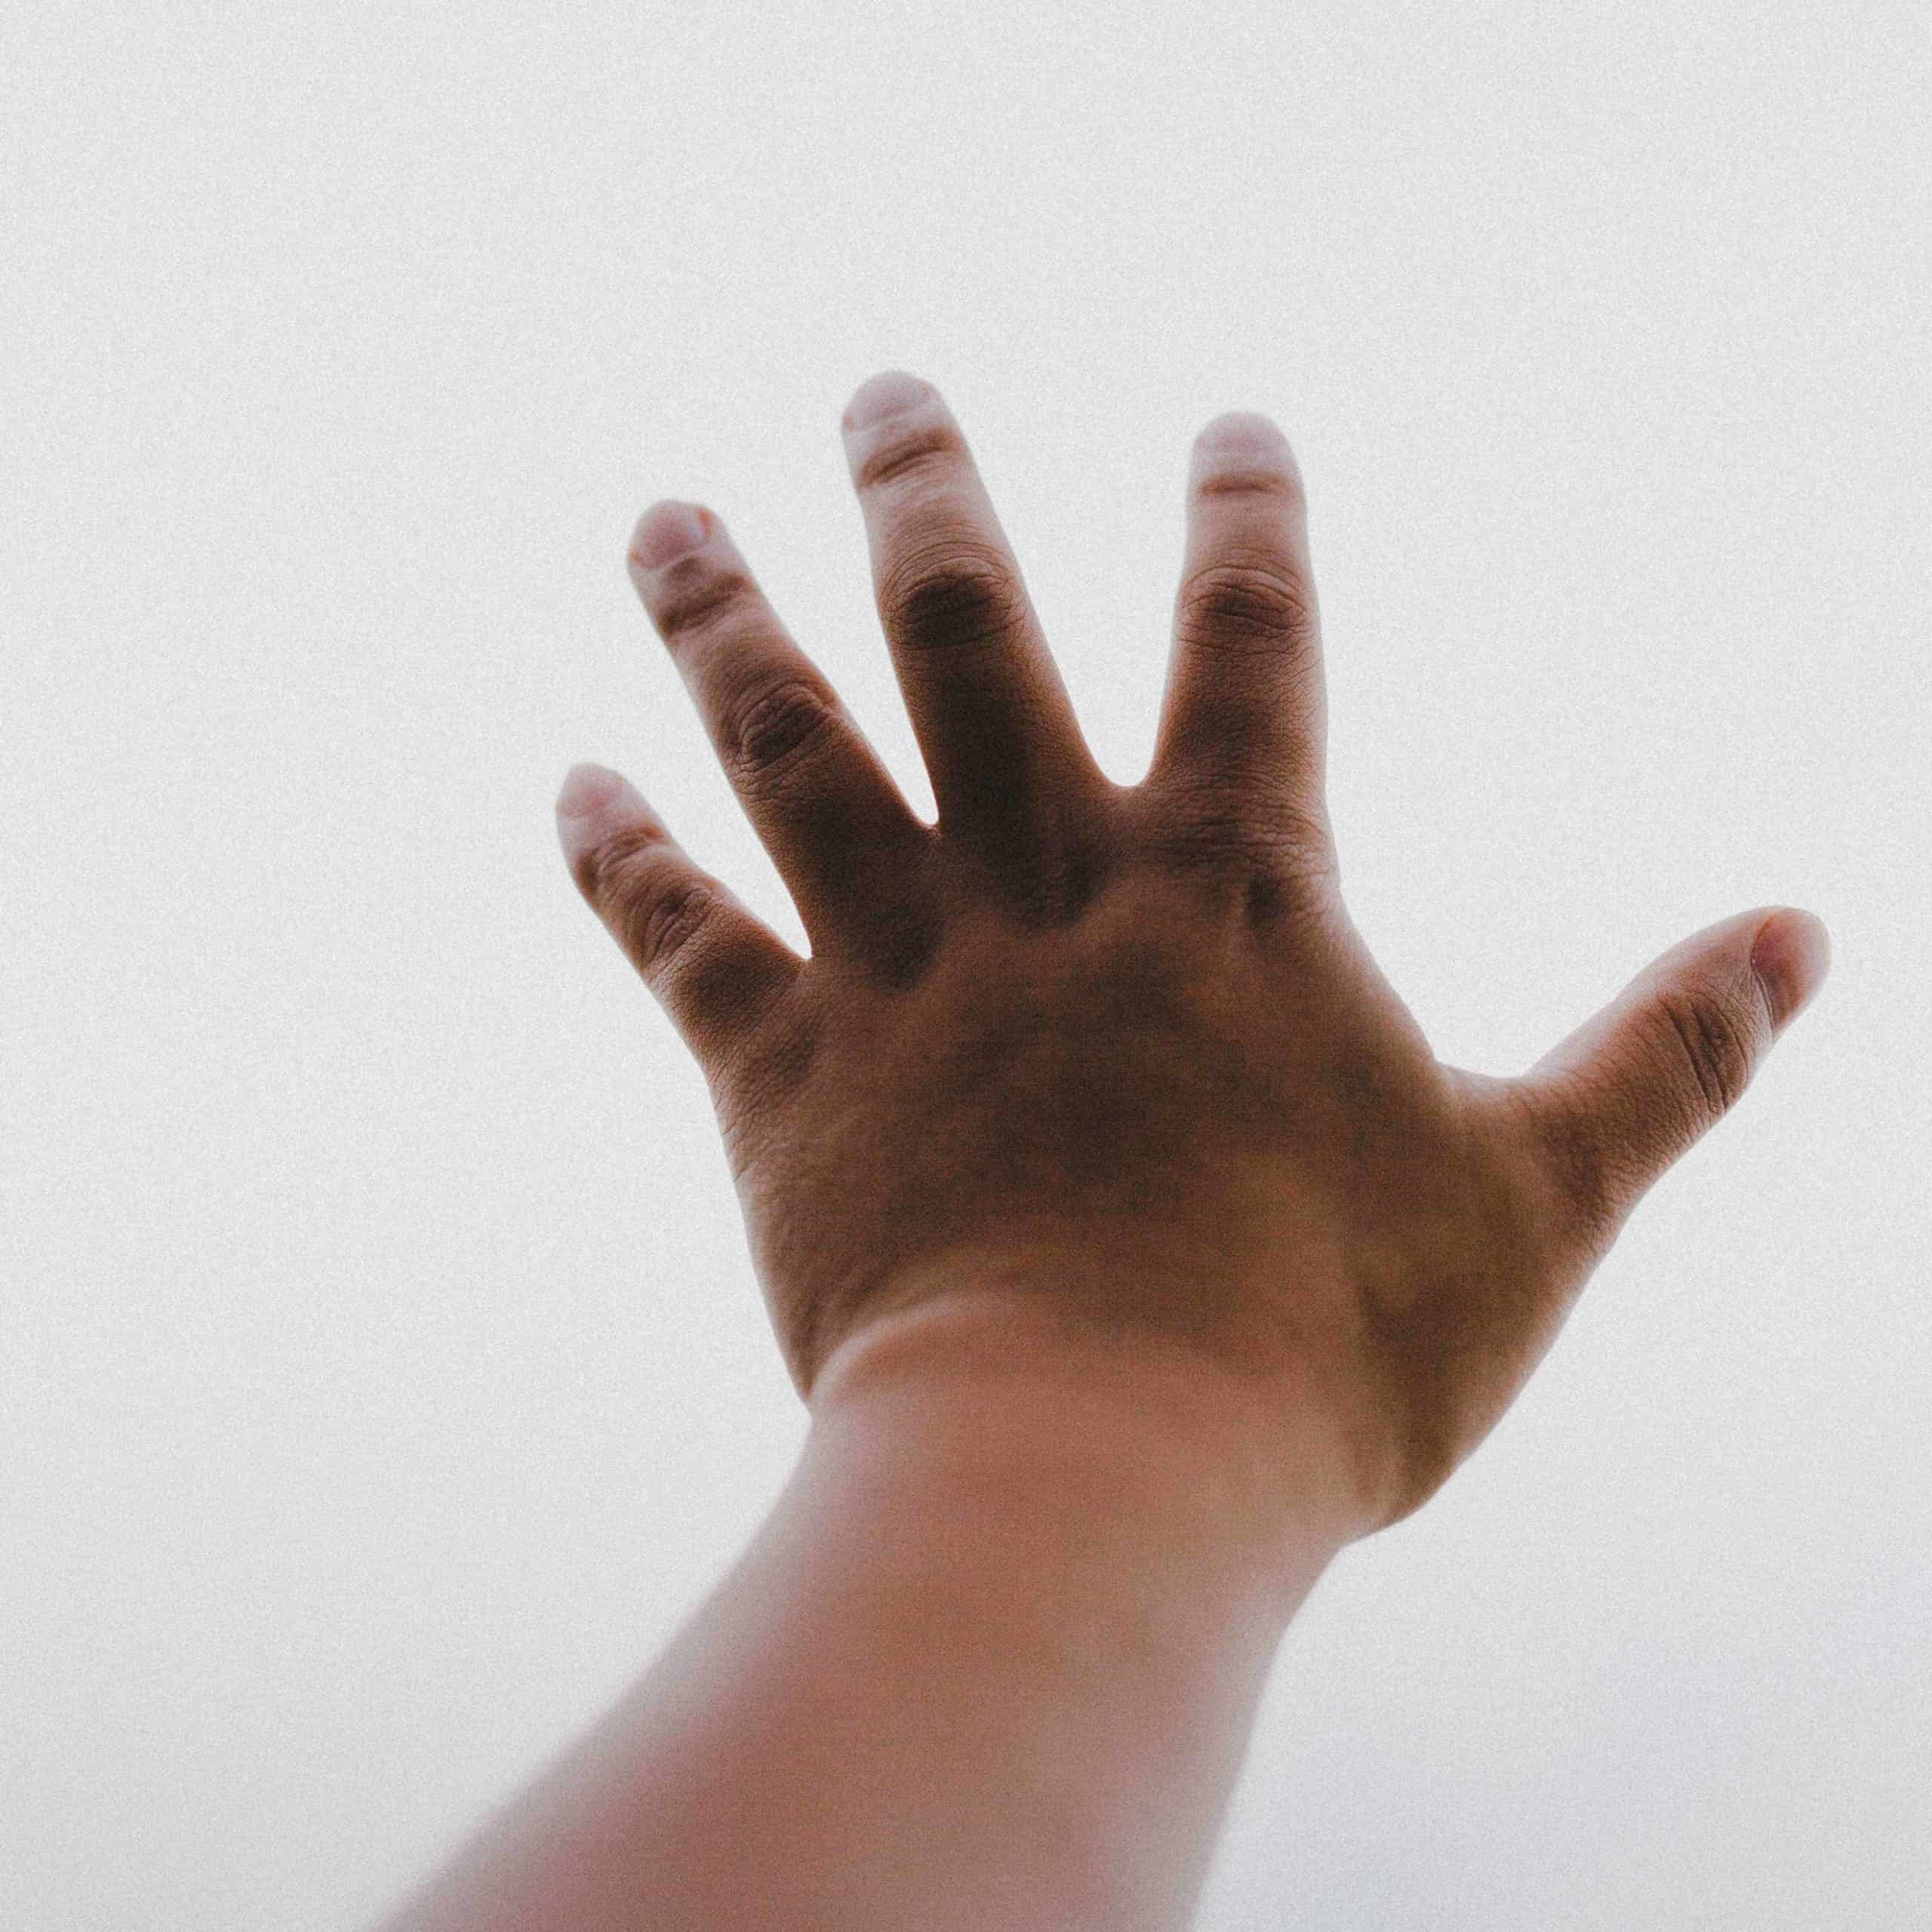 Hand reaching towards the sky